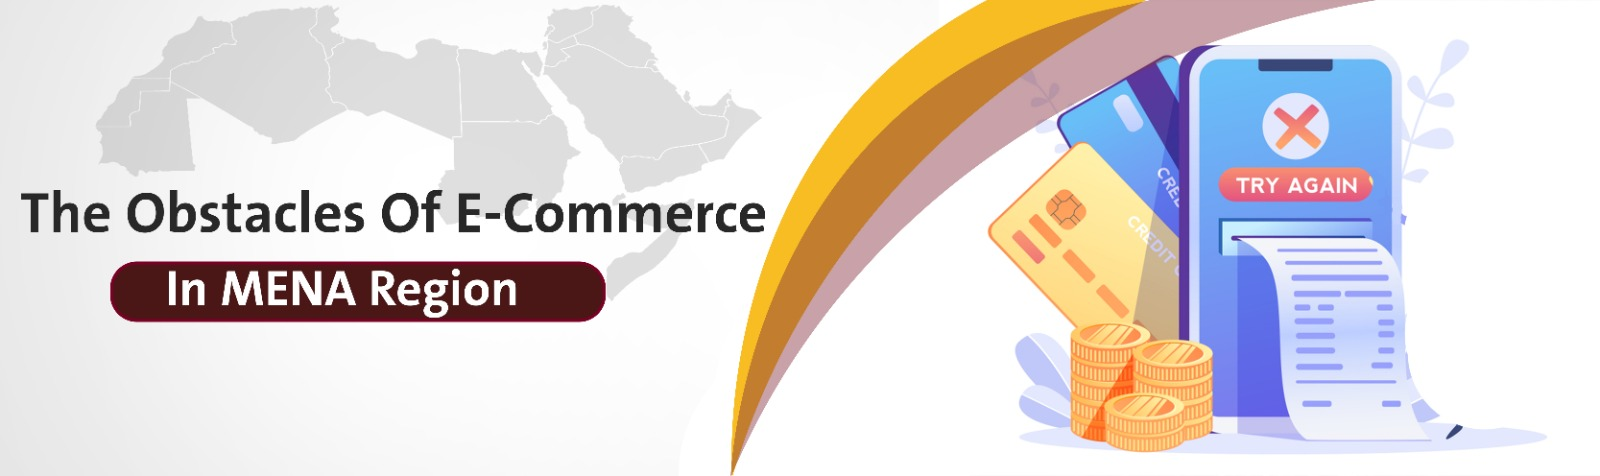 The Obstacles Of E-Commerce In MENA Region | ٍSadad Article banner